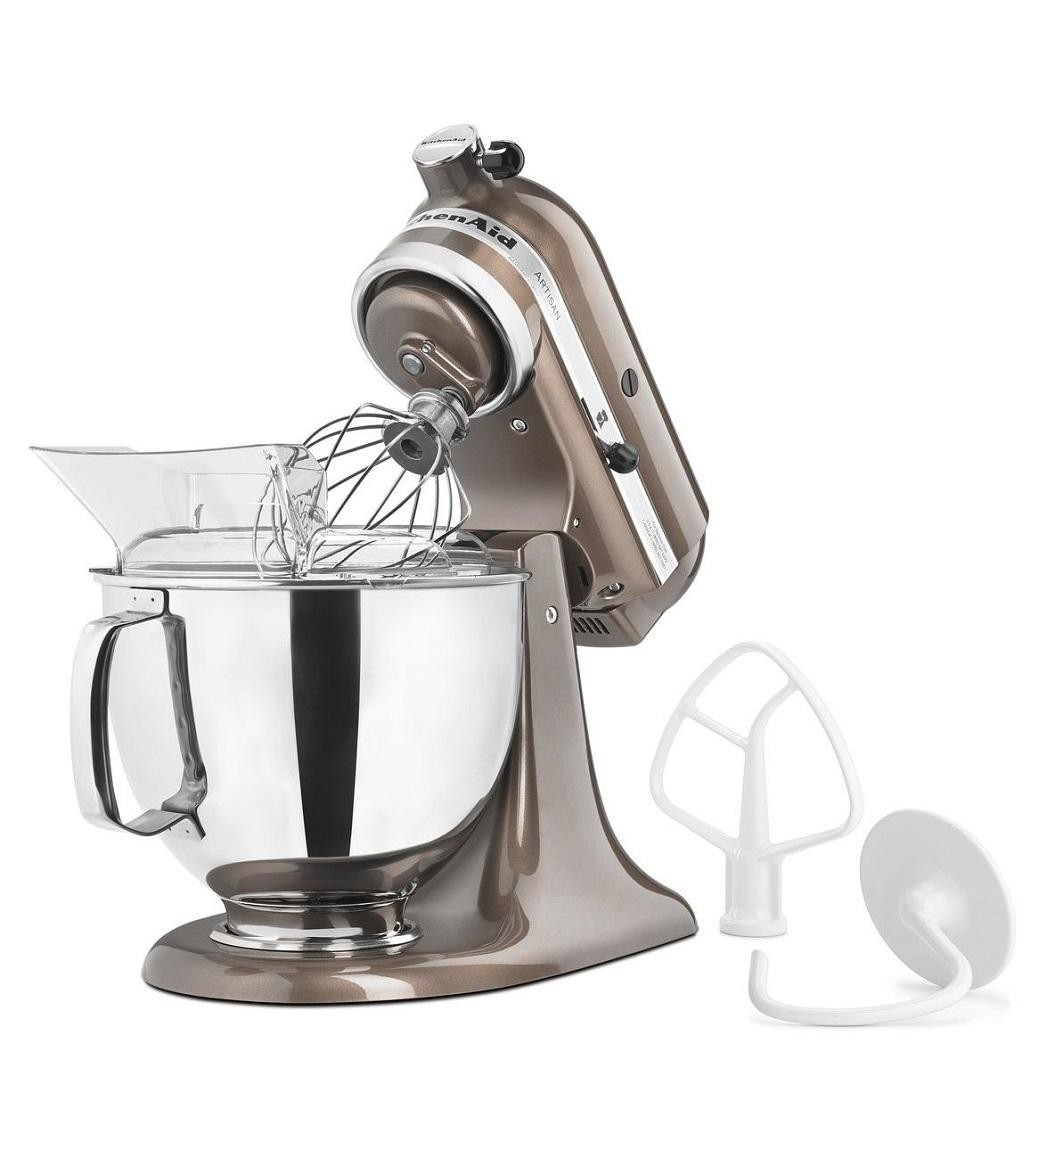 kitchenaid-5KSM150PSBAP-mixer.jpg